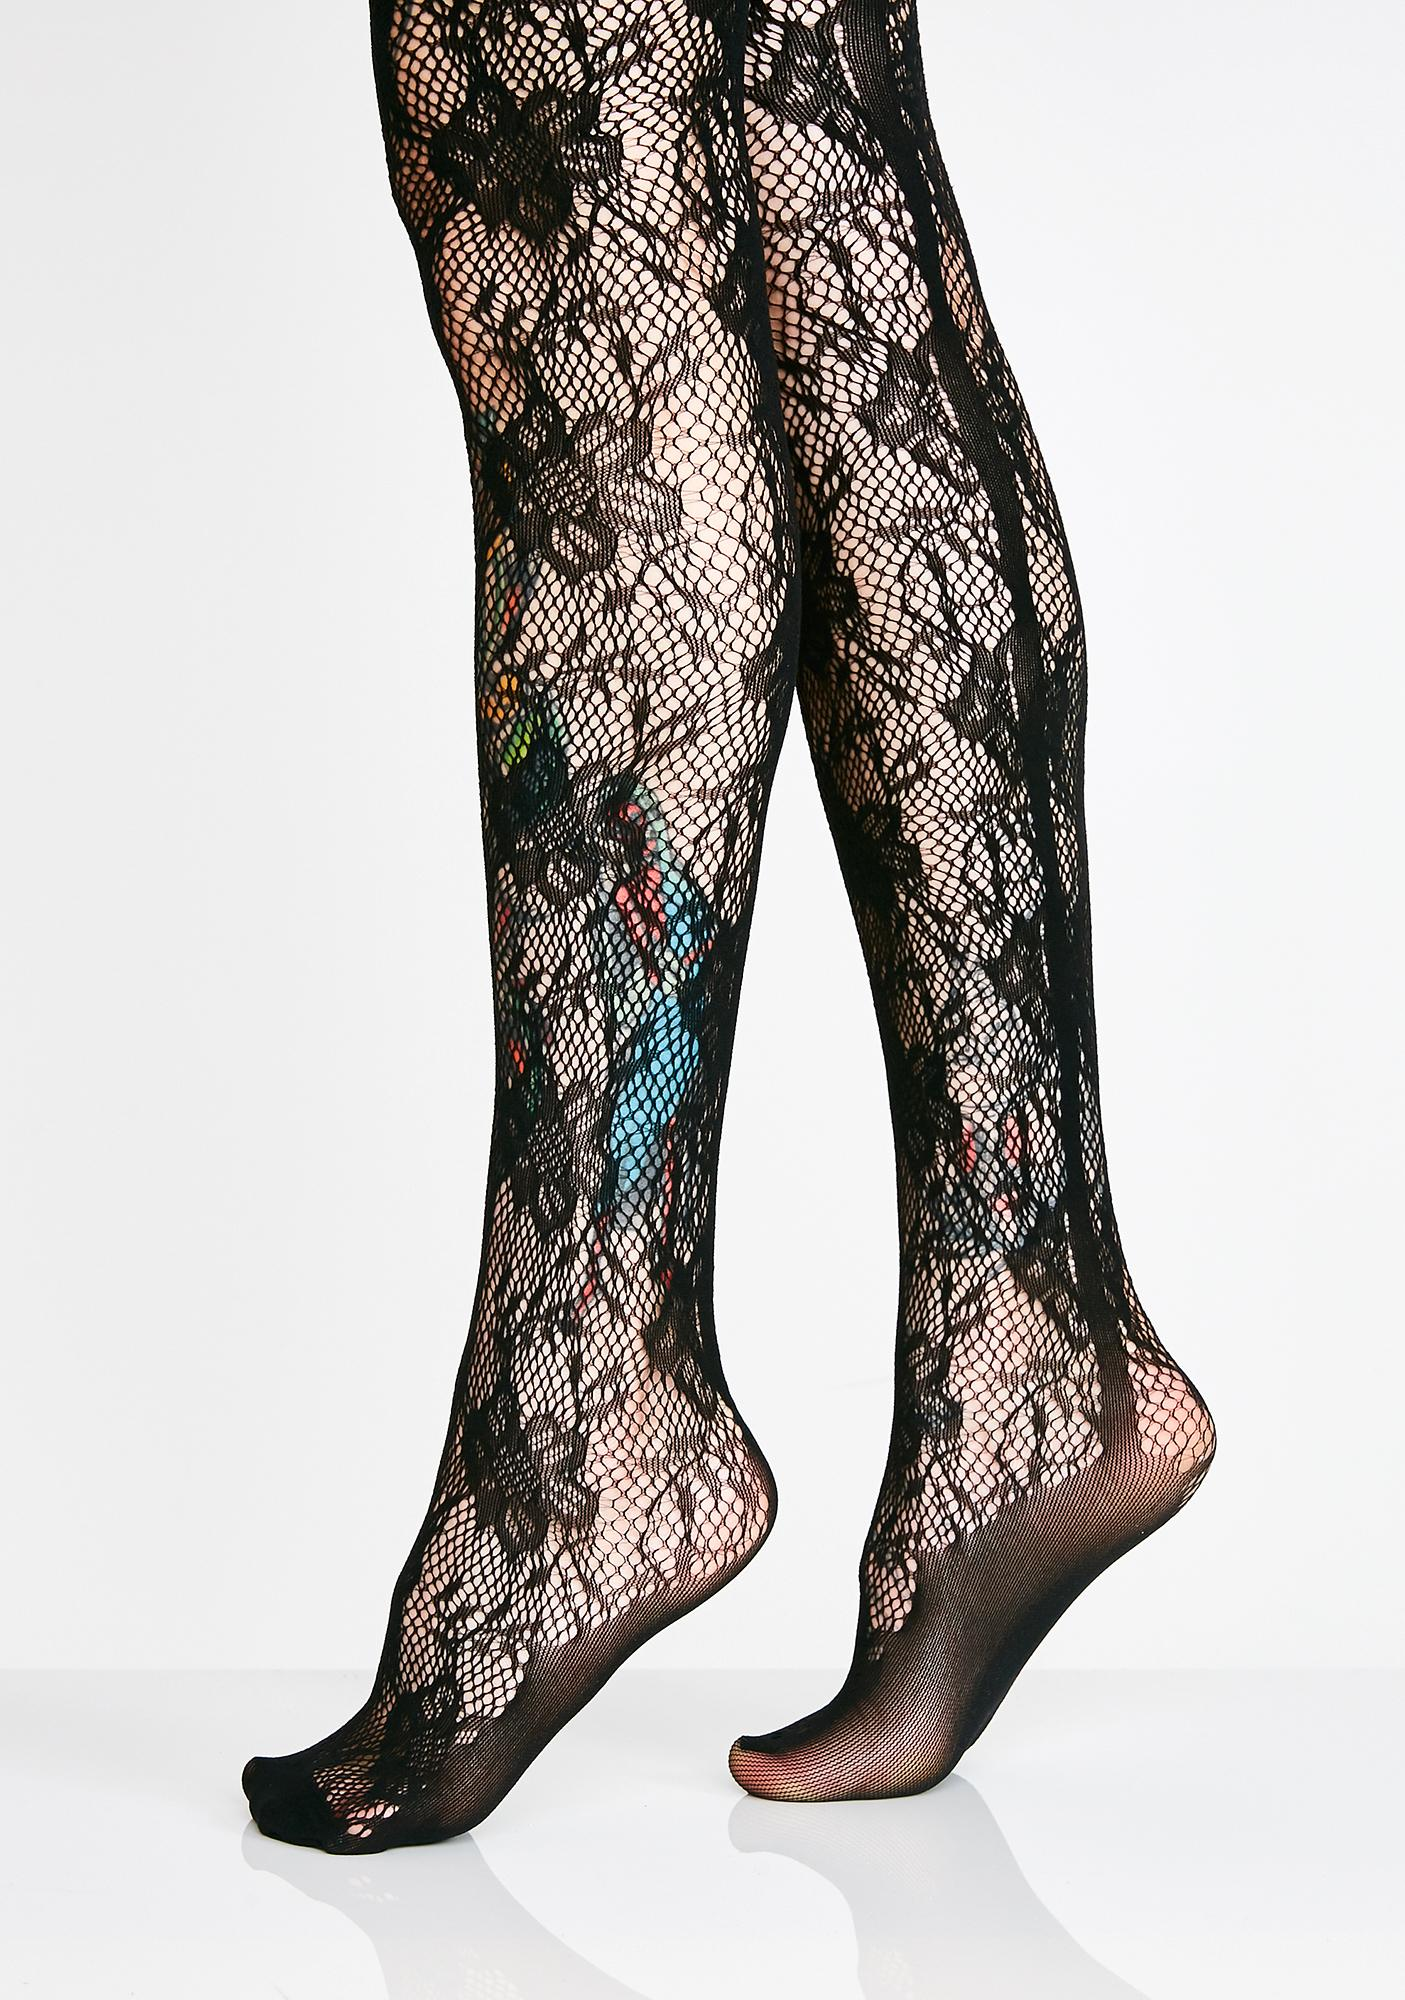 574b8f56069 Crotchless Lace Suspender Tights